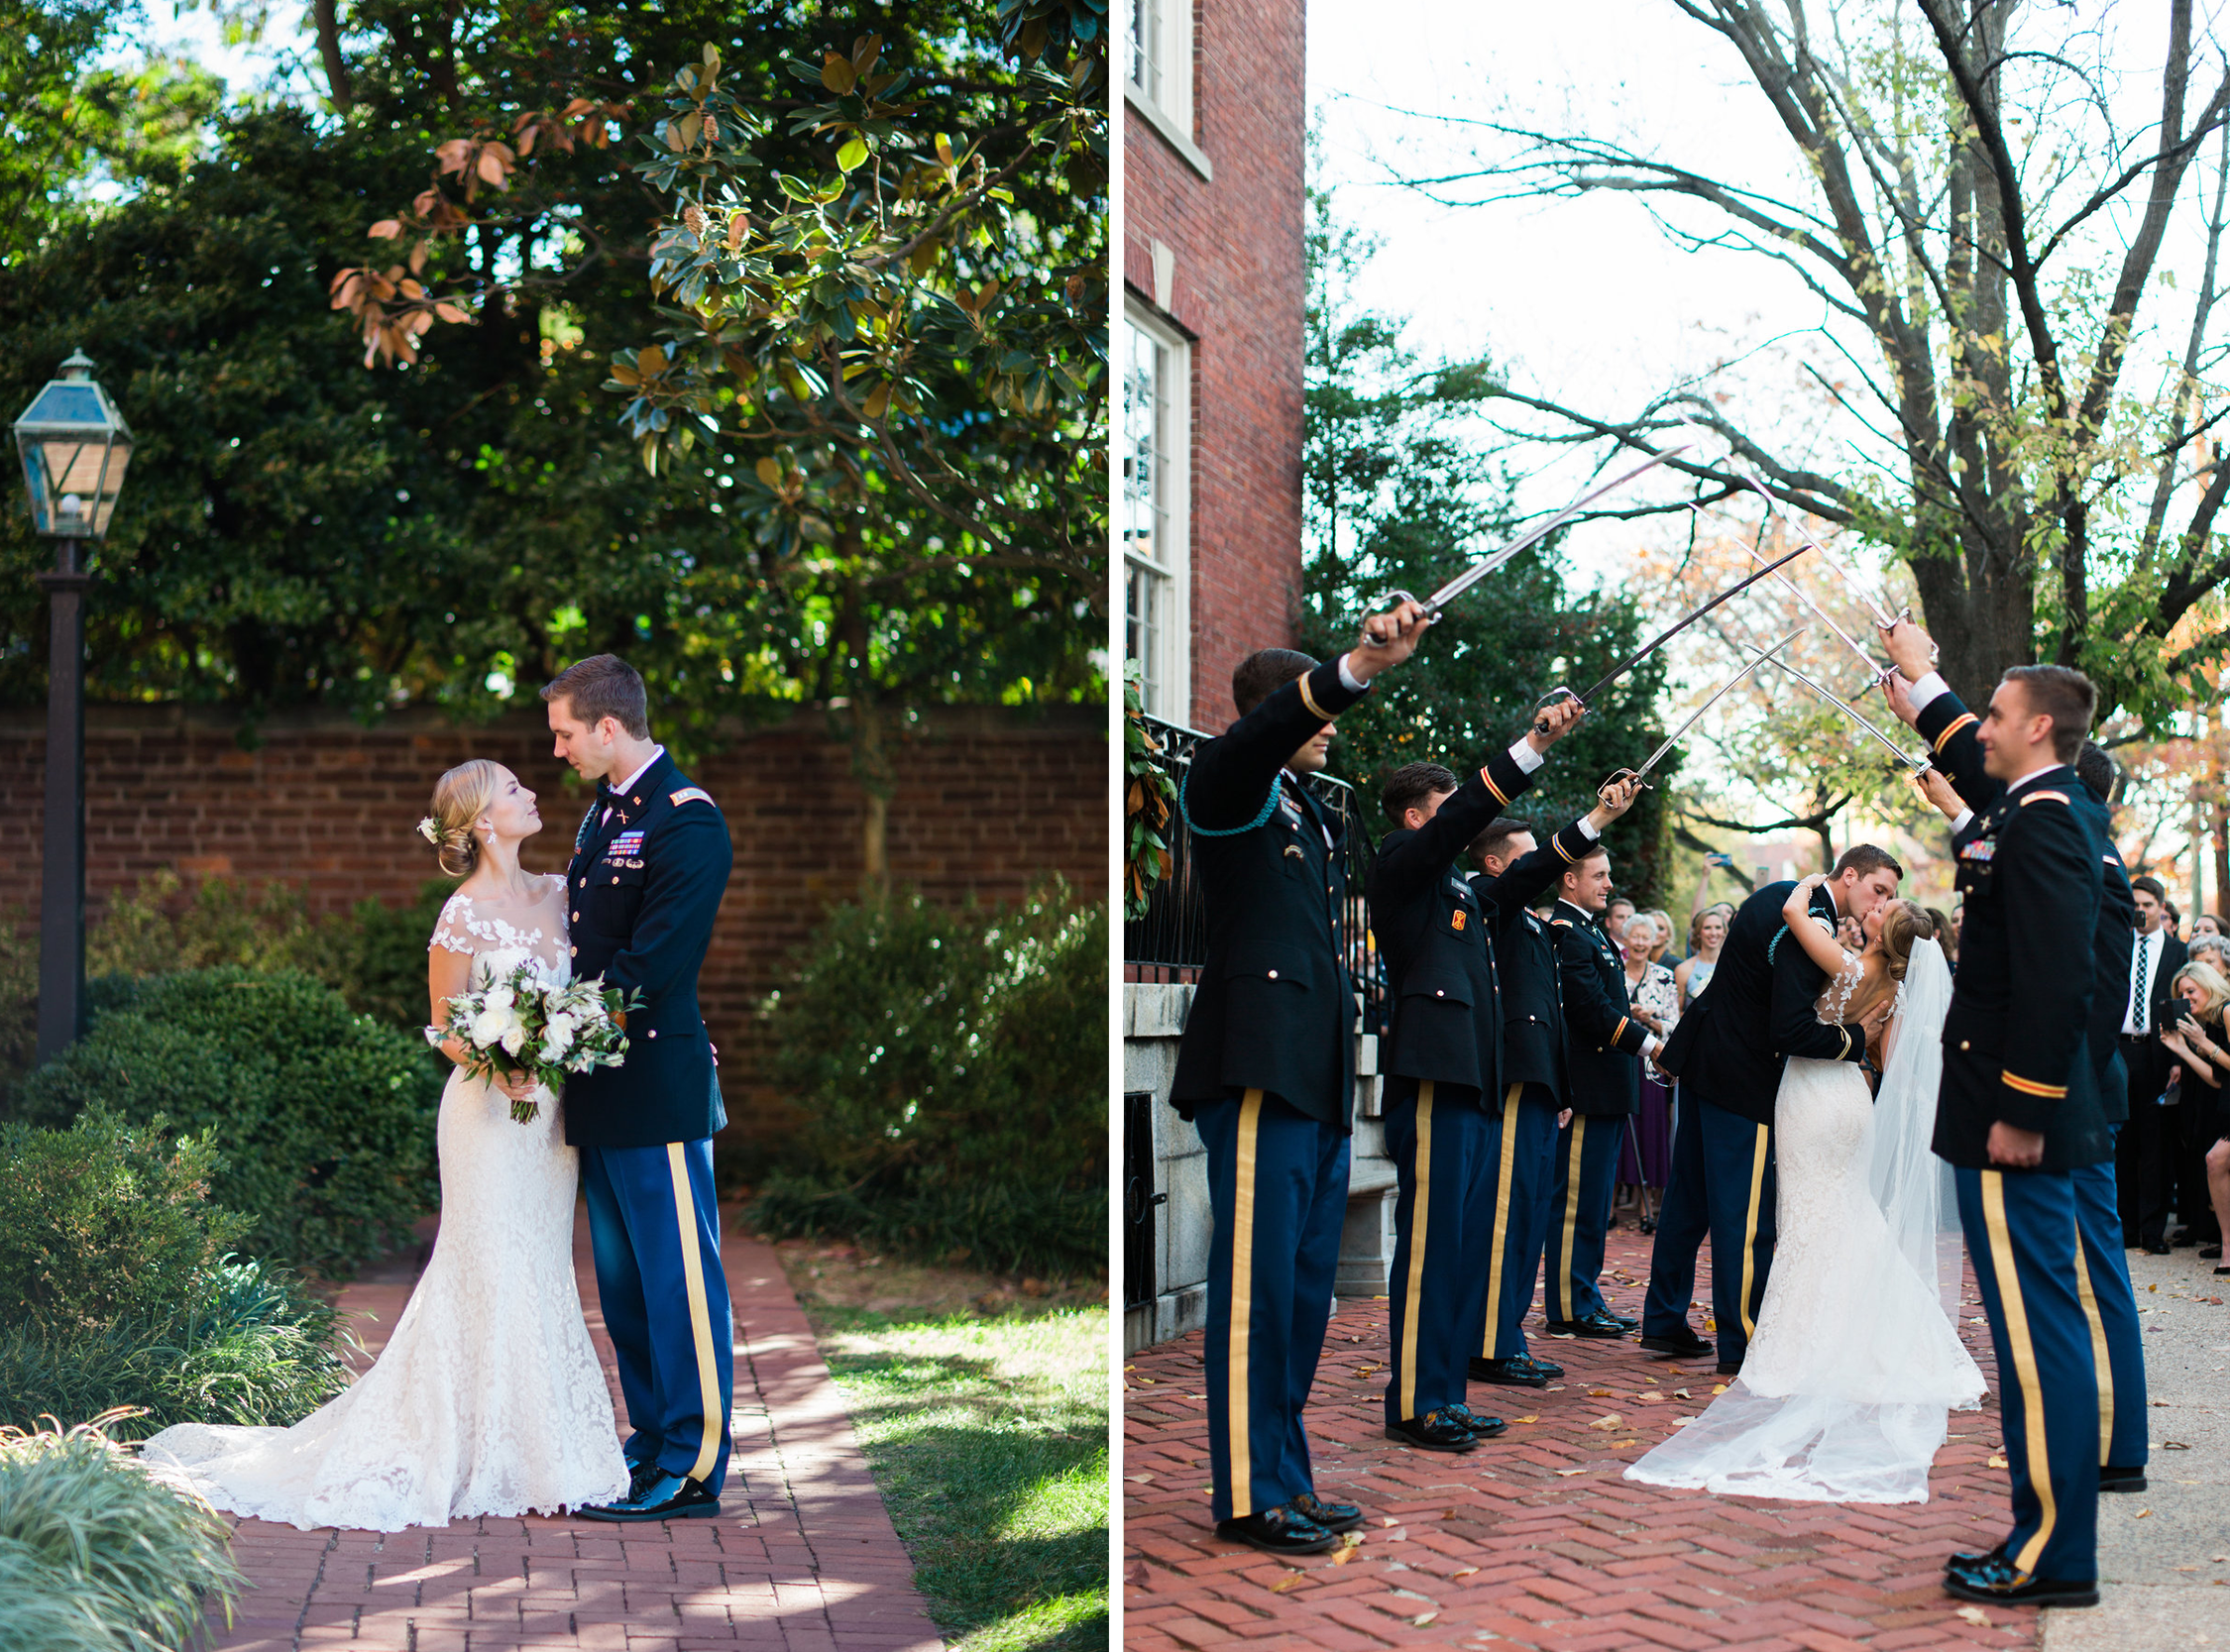 Saber arch at military wedding